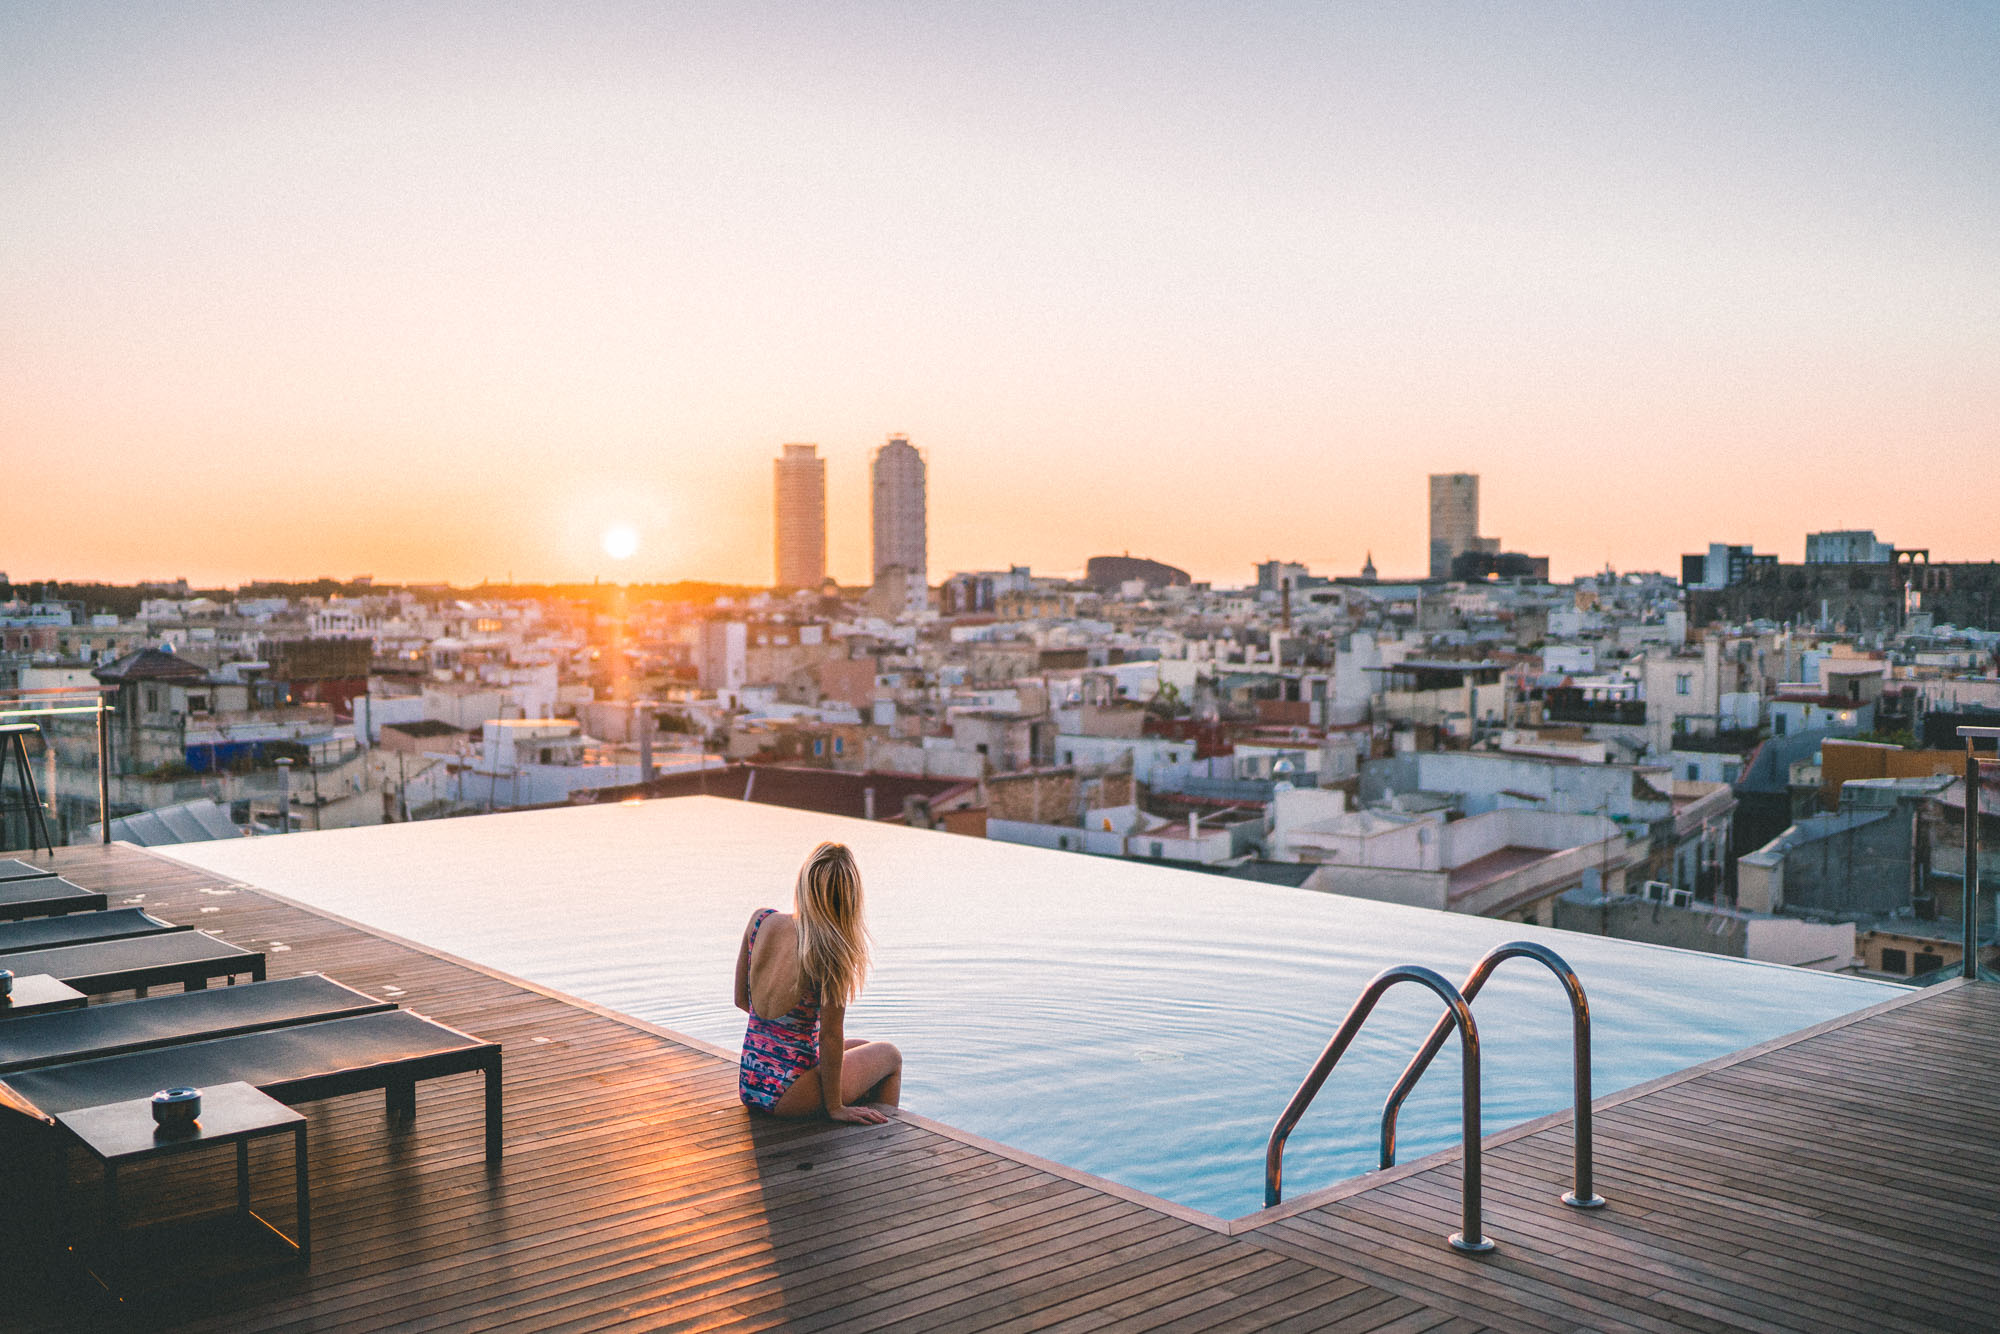 Rooftop views in Barcelona, Spain